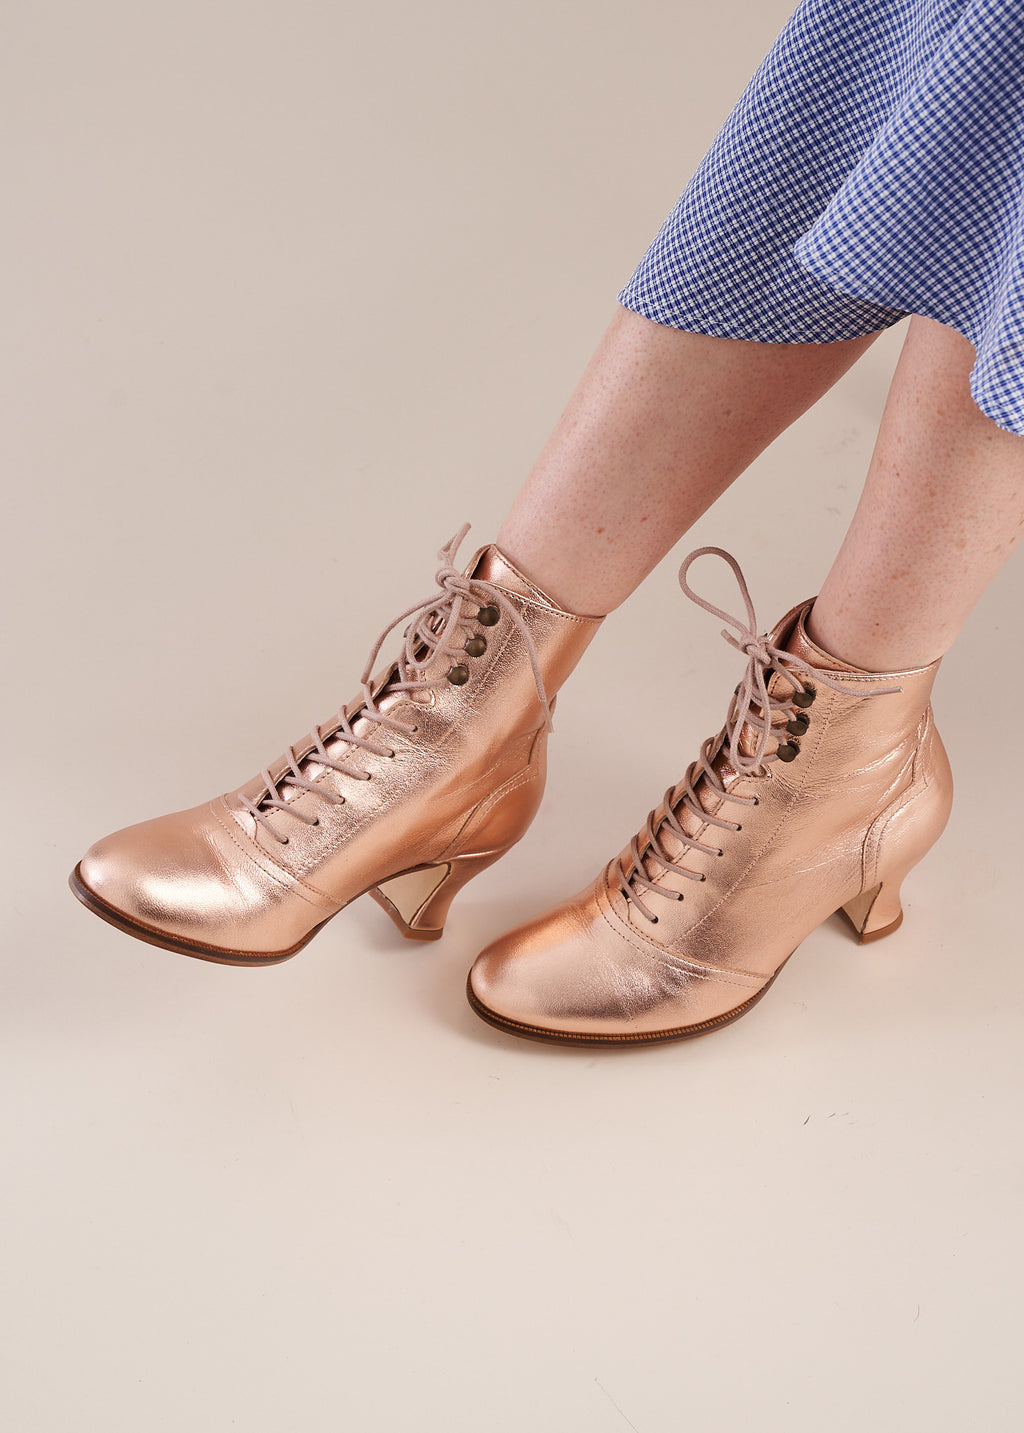 Alexa in rose gold leather by Miss L Fire is a vintage inspired ski lace ankle boot with low heel. Ethically made in Portugal.